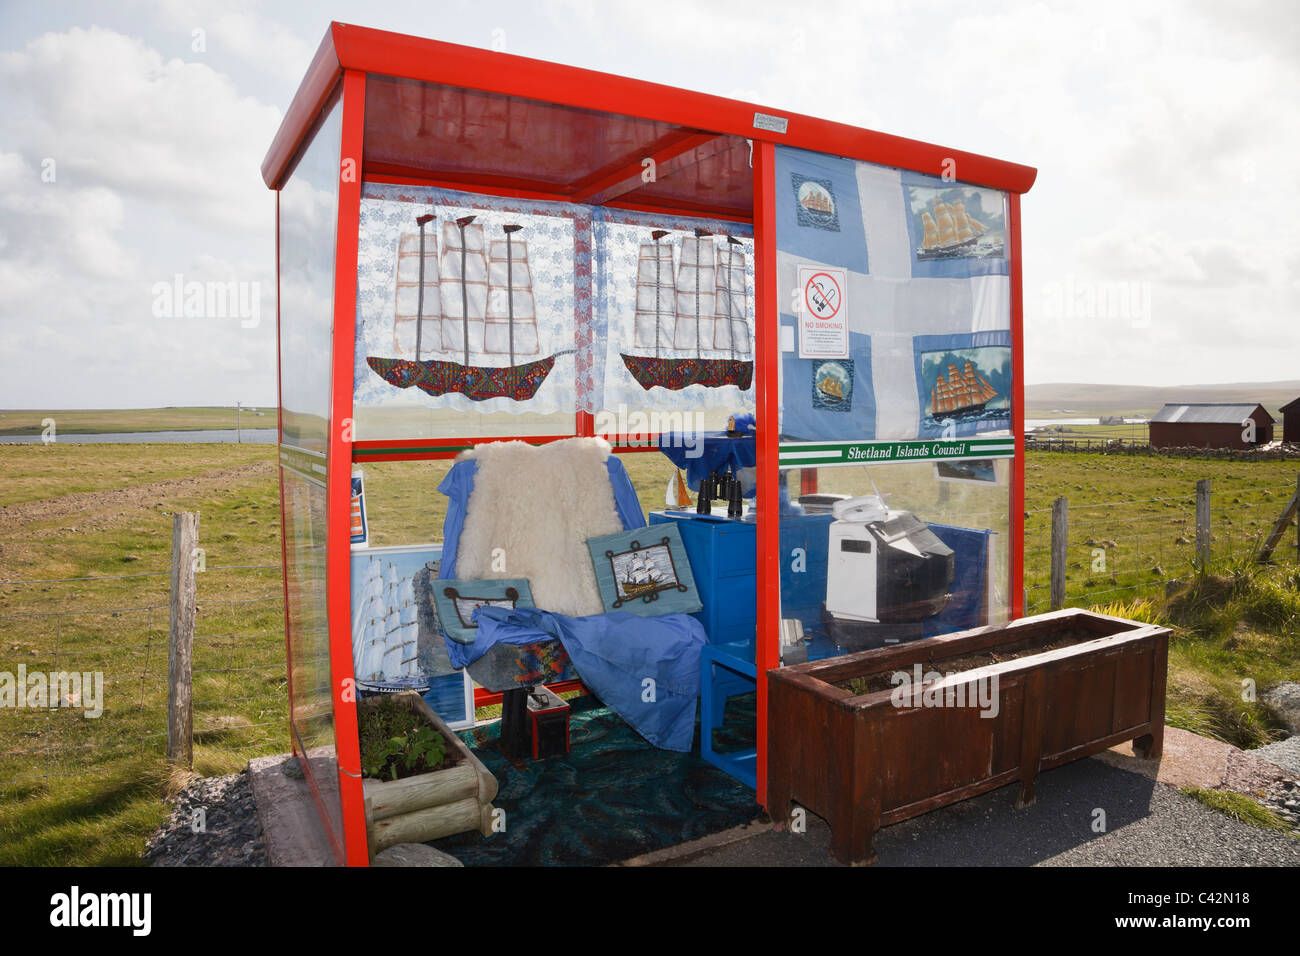 Rural bus stop shelter furnished and decorated with home comforts. Baltasound, Unst, Shetland Islands, Scotland, - Stock Image